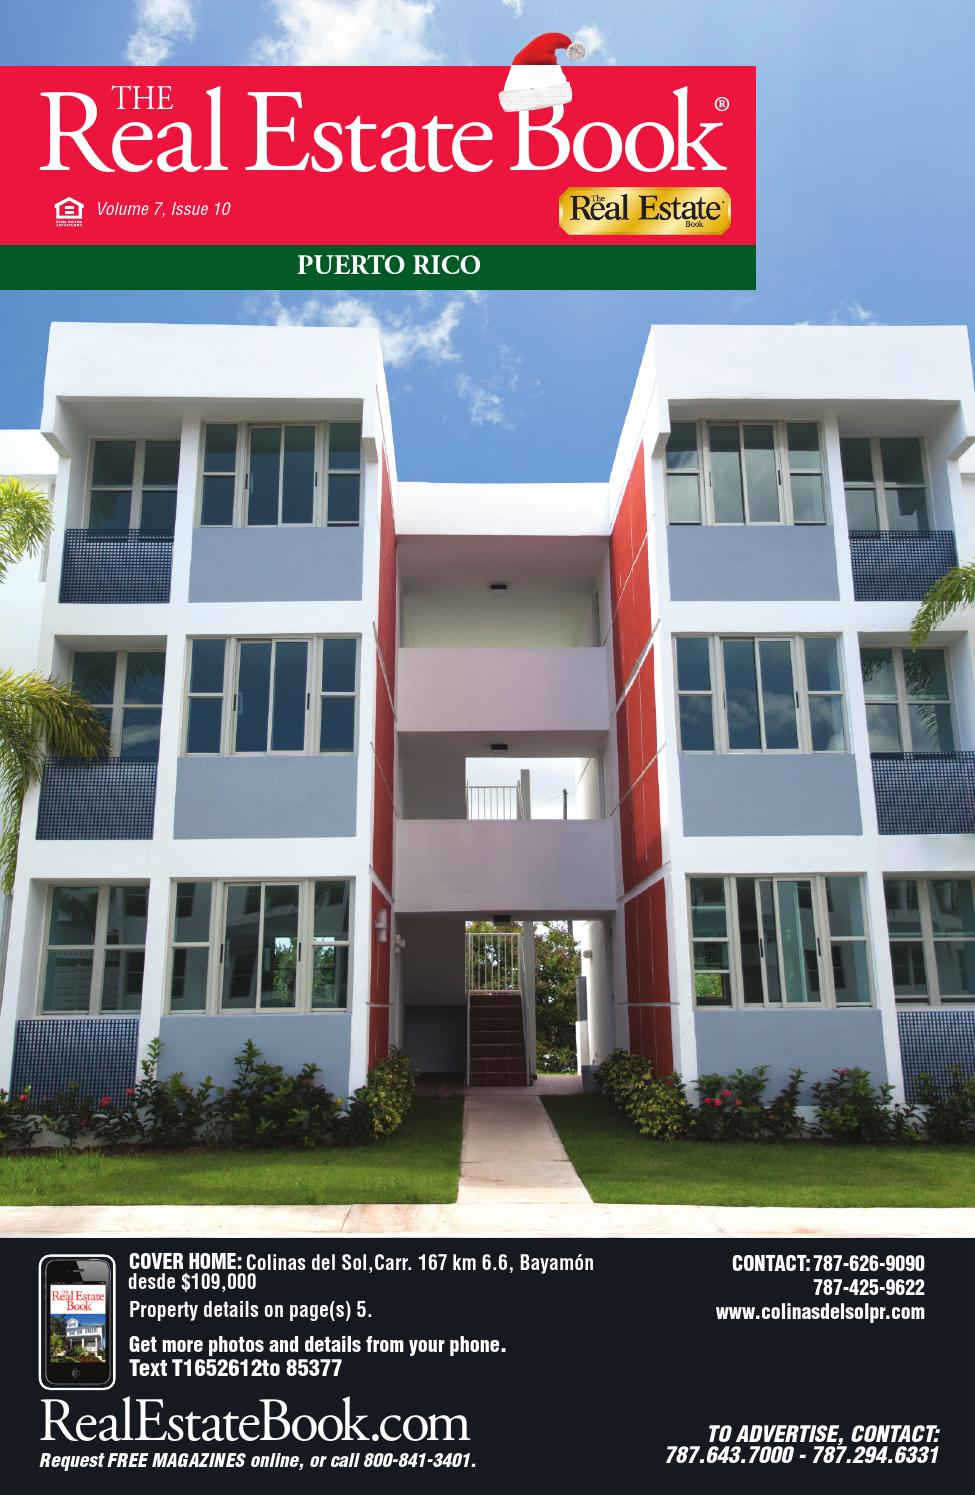 Binder7 10 by The Real Estate Book PR - issuu